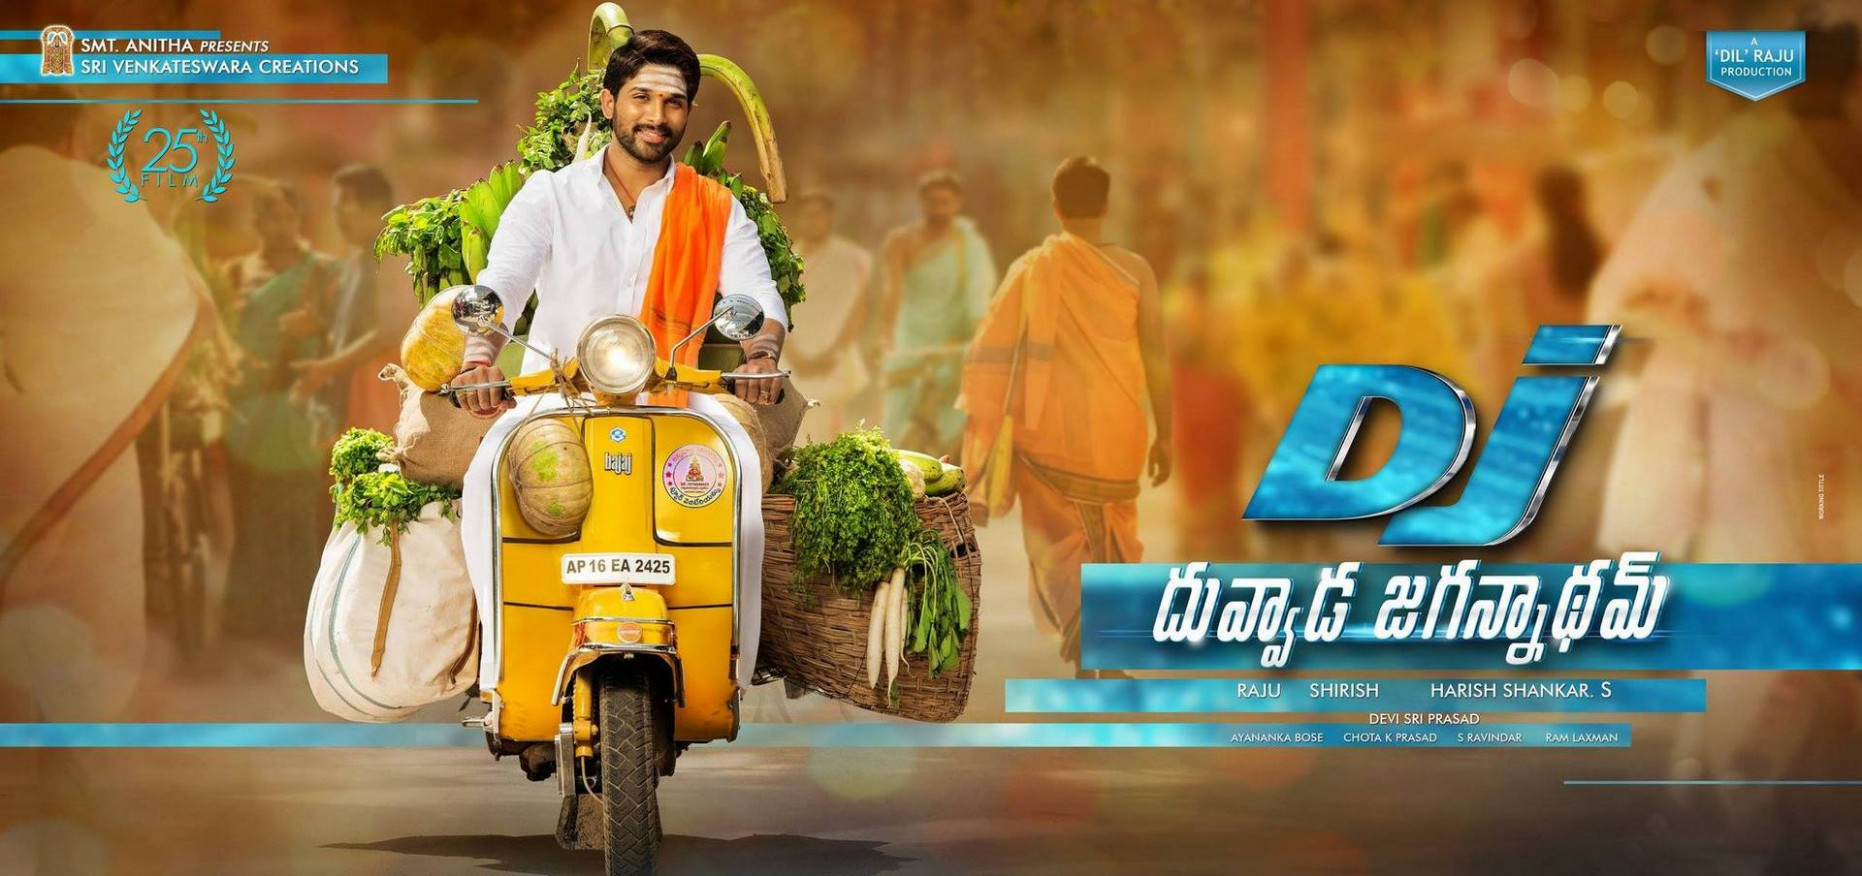 Allu Arjun Duvvada Jagannadham Movie First Look HD Posters ...